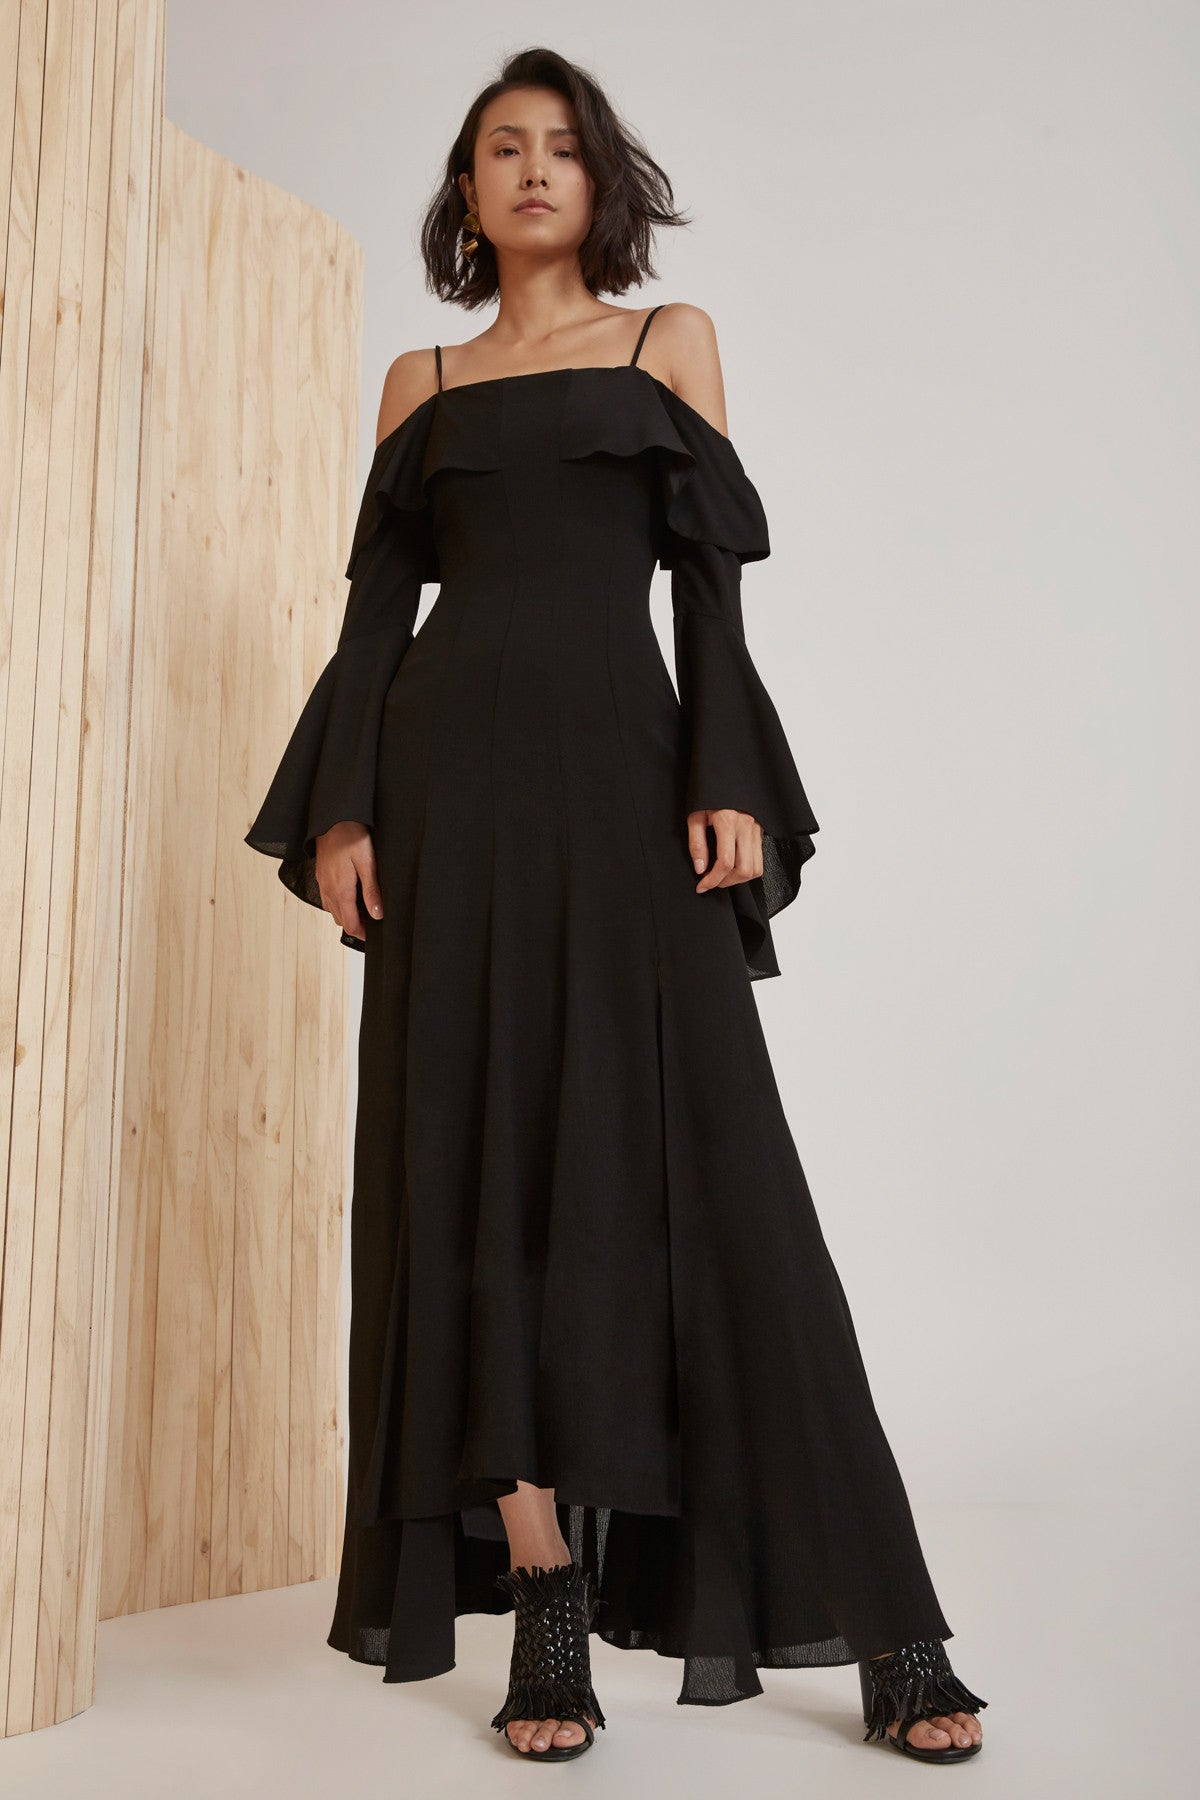 COMPOSE FULL LENGTH DRESS black